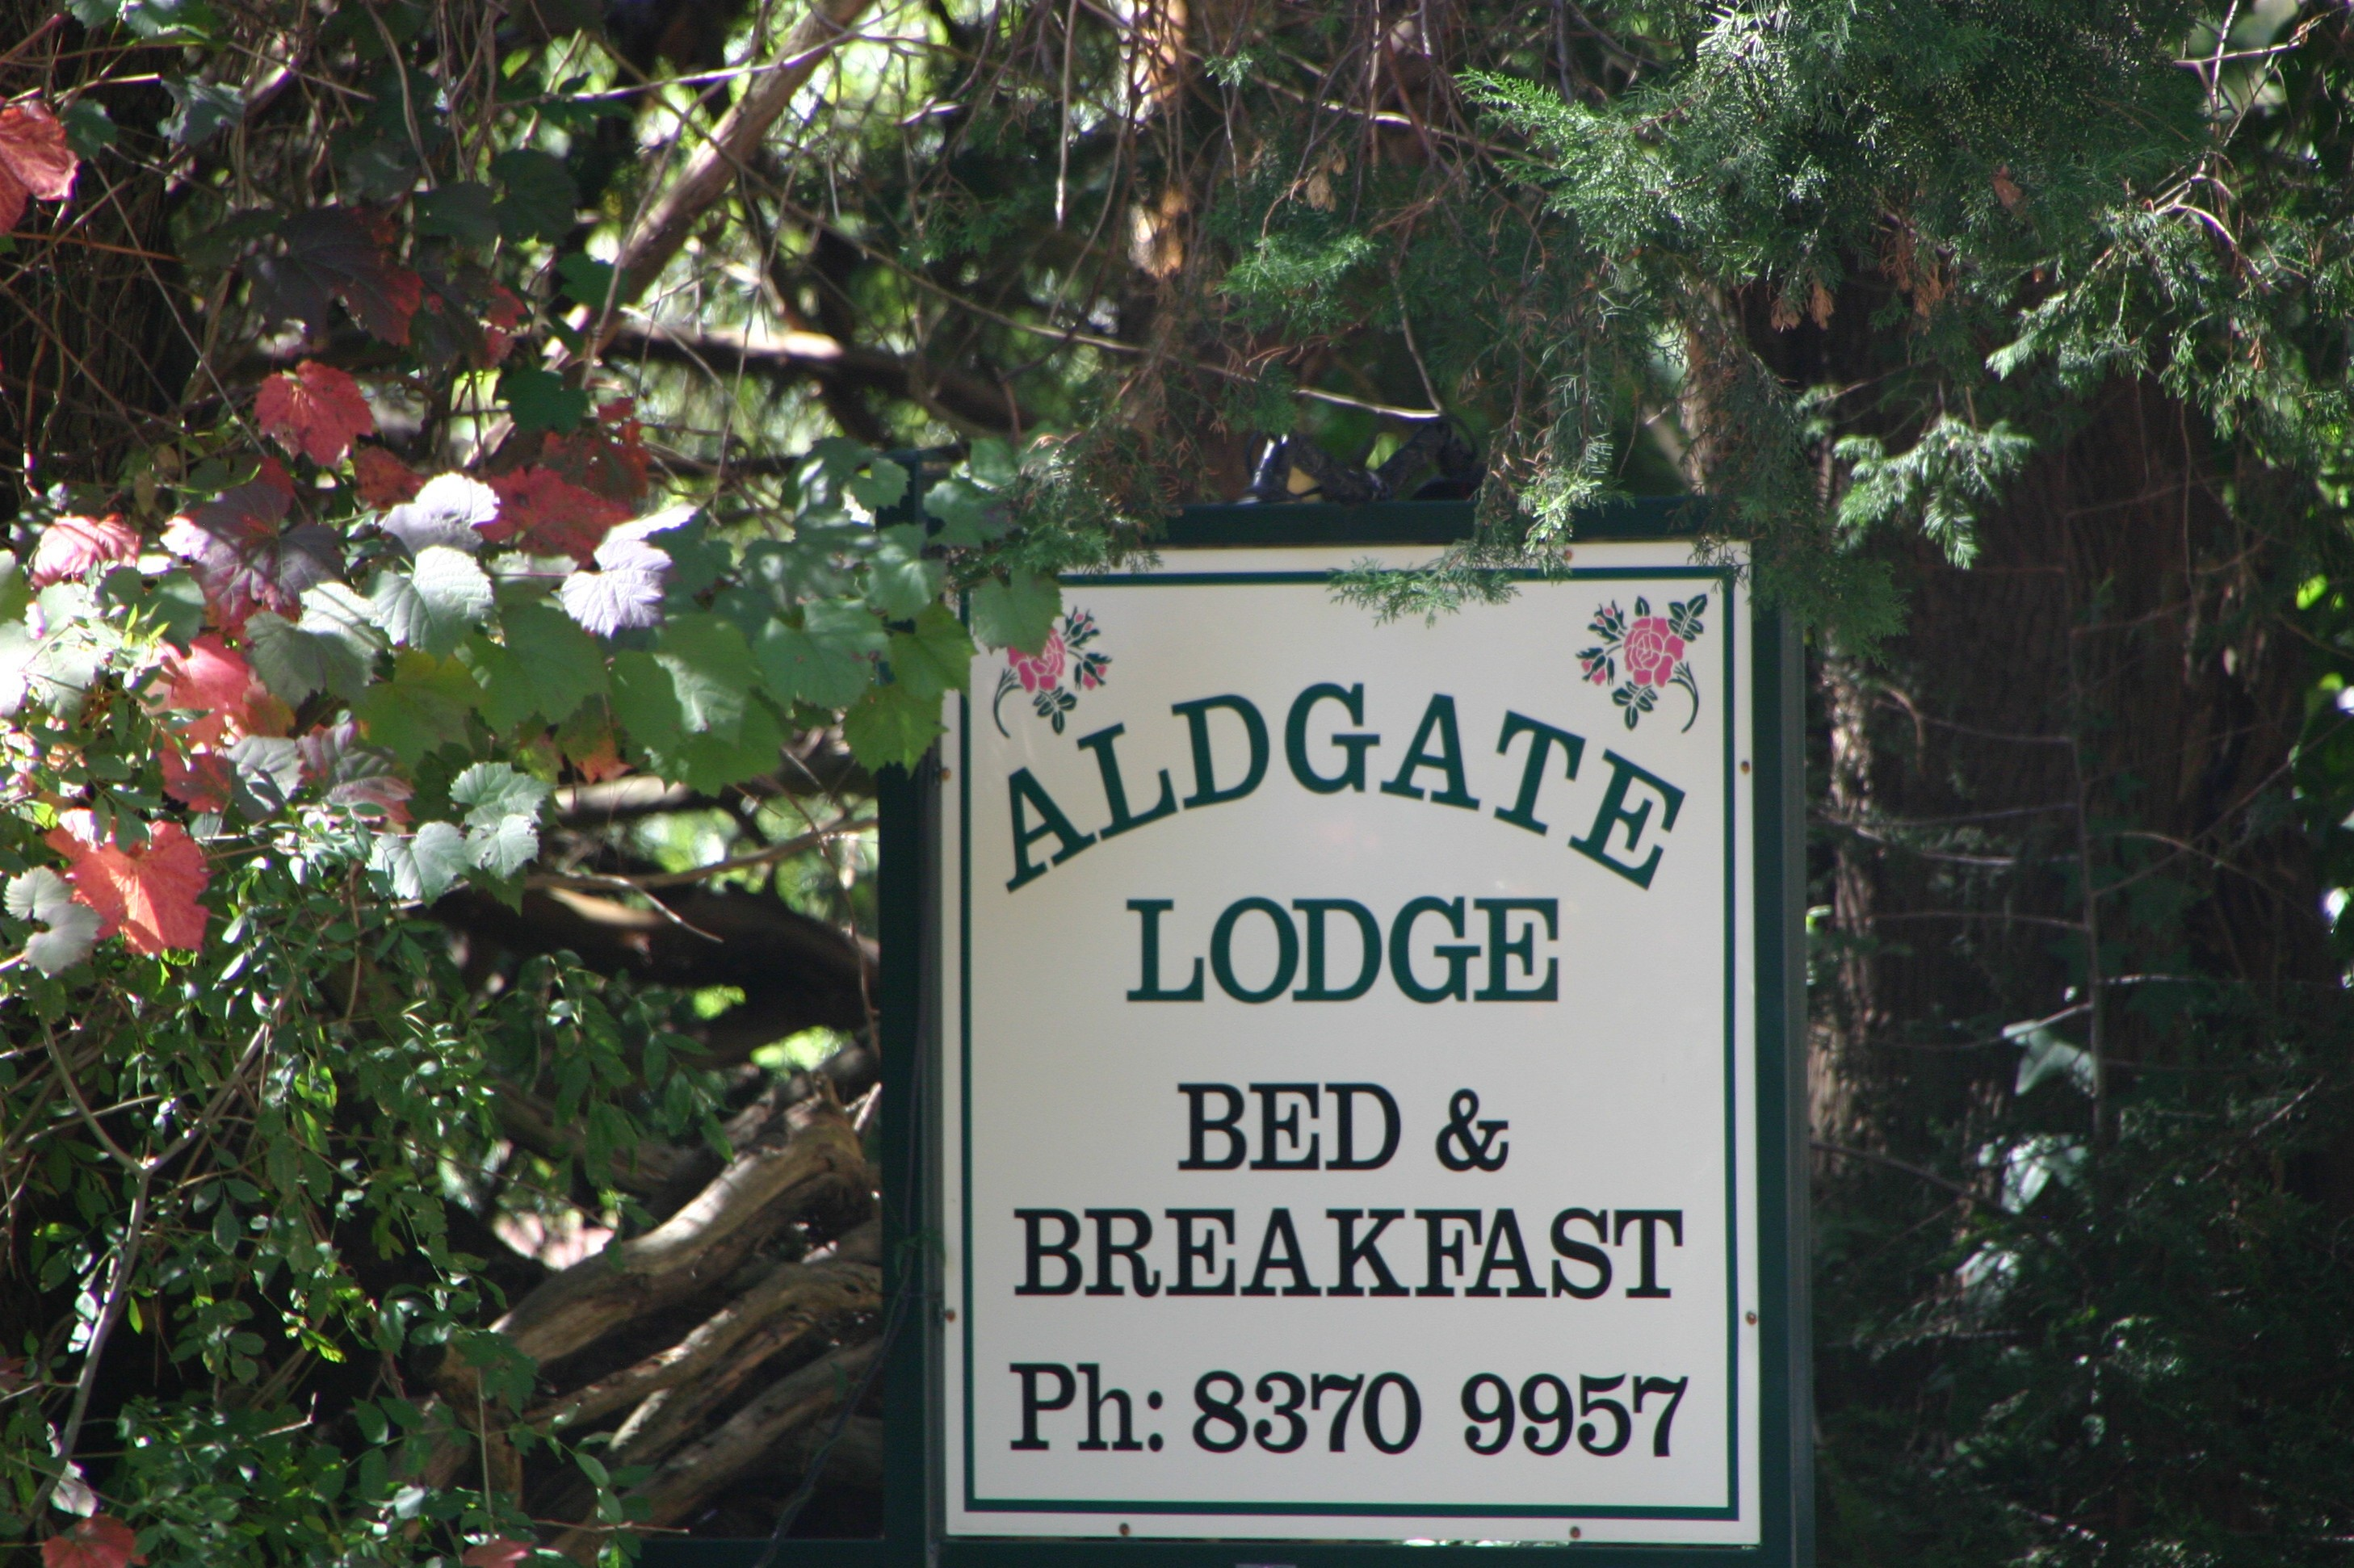 Aldgate Lodge B&B